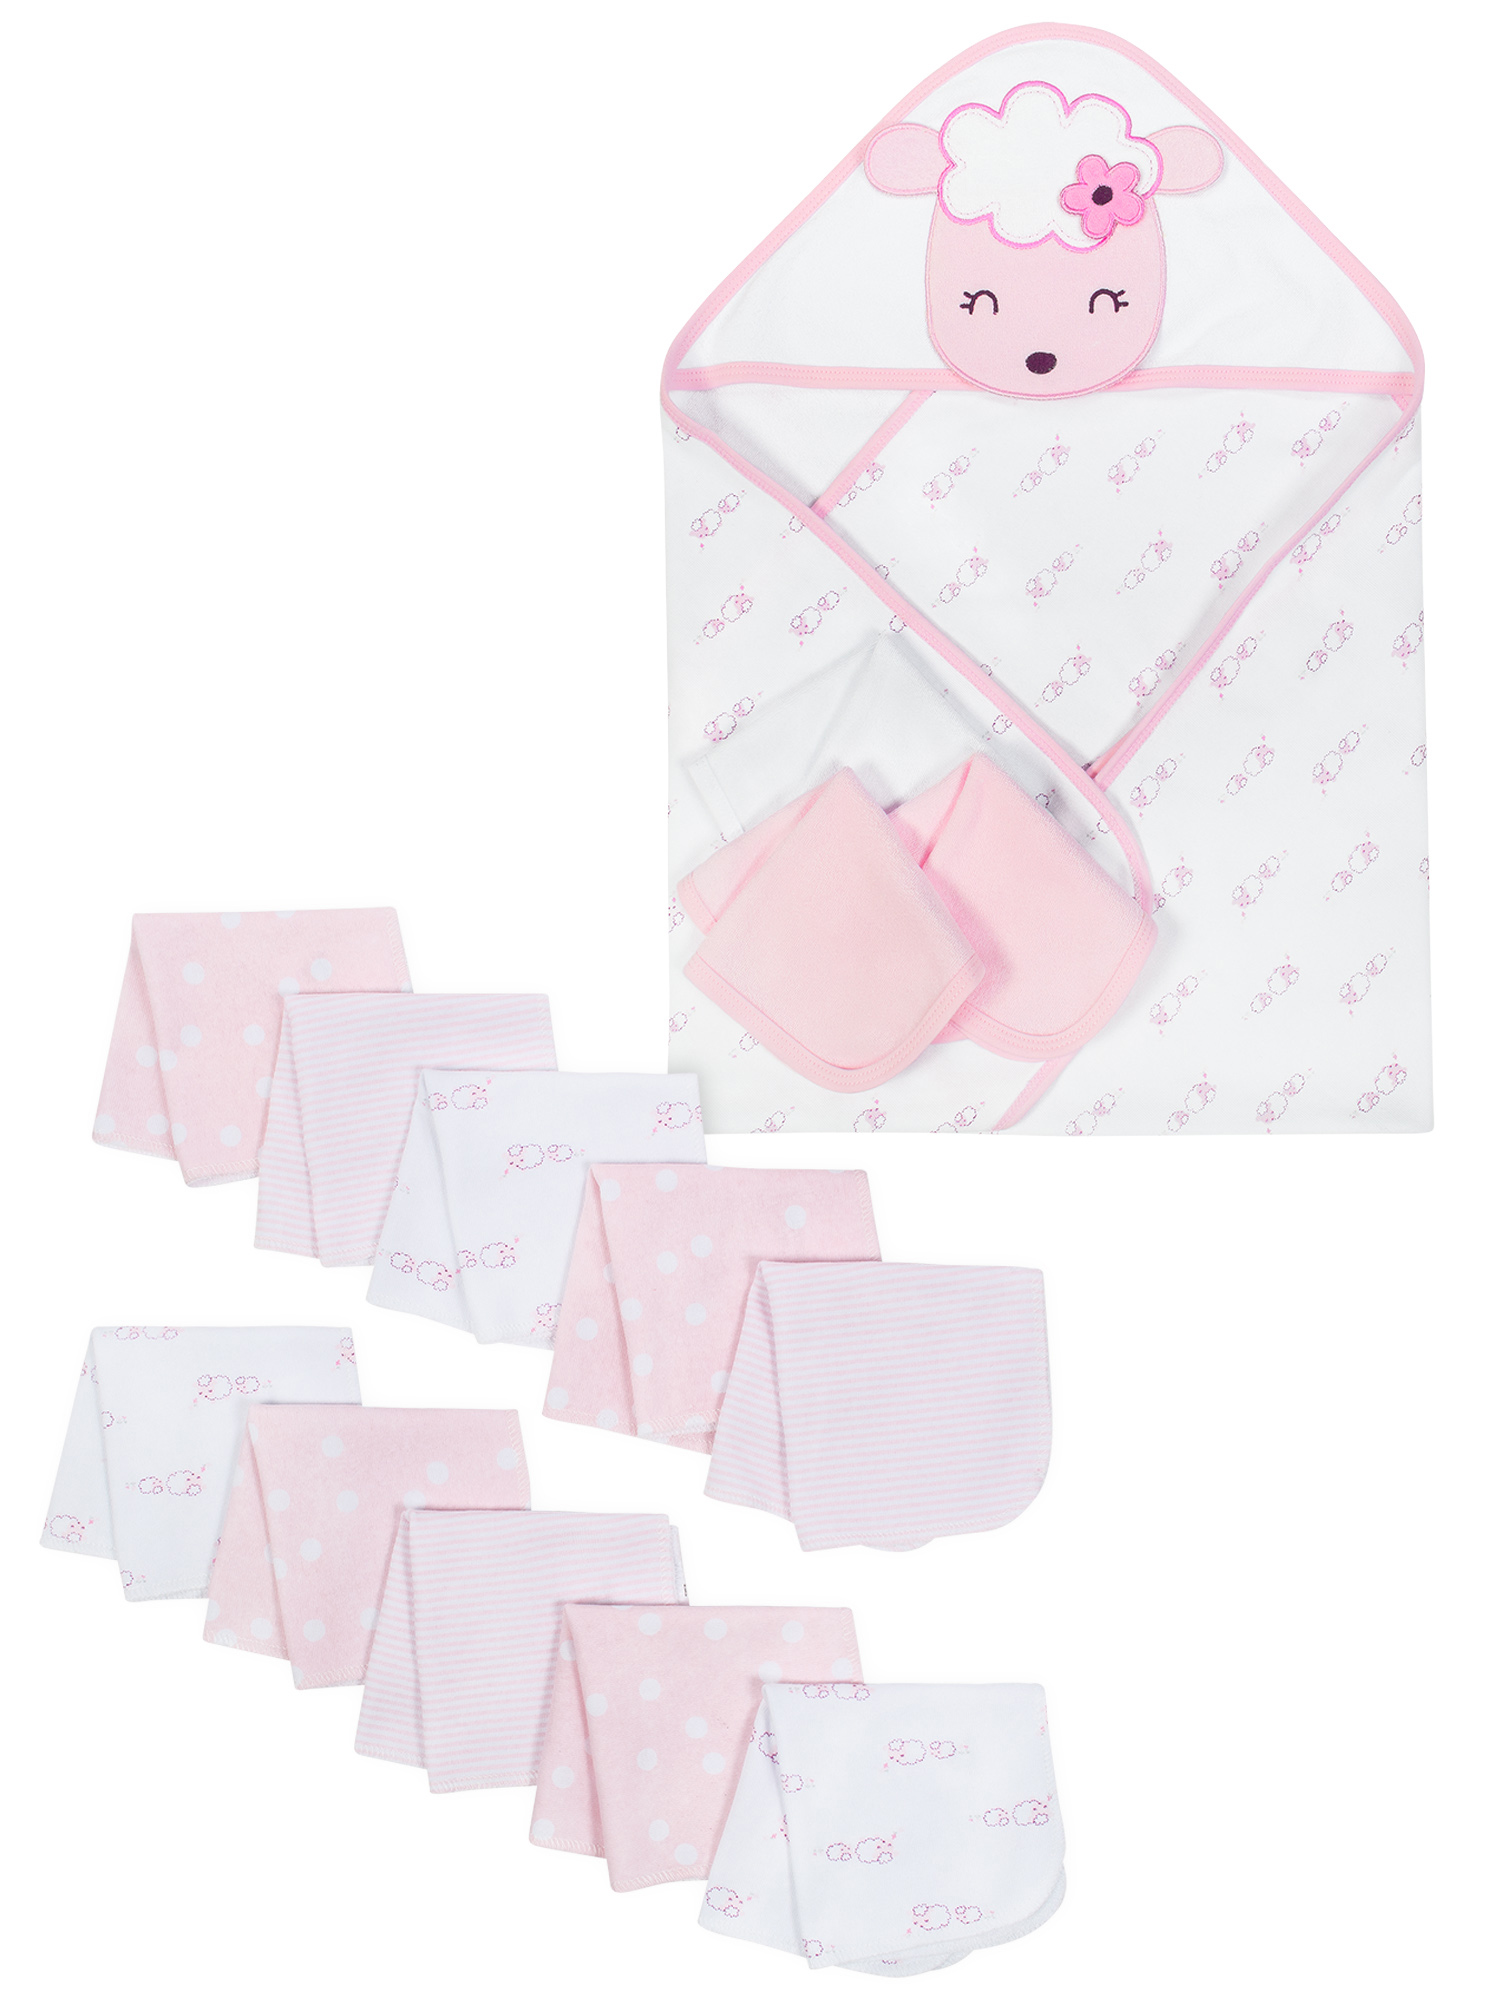 Hooded Towels & Washcloths Bath Set, 14-piece (Baby Girls)